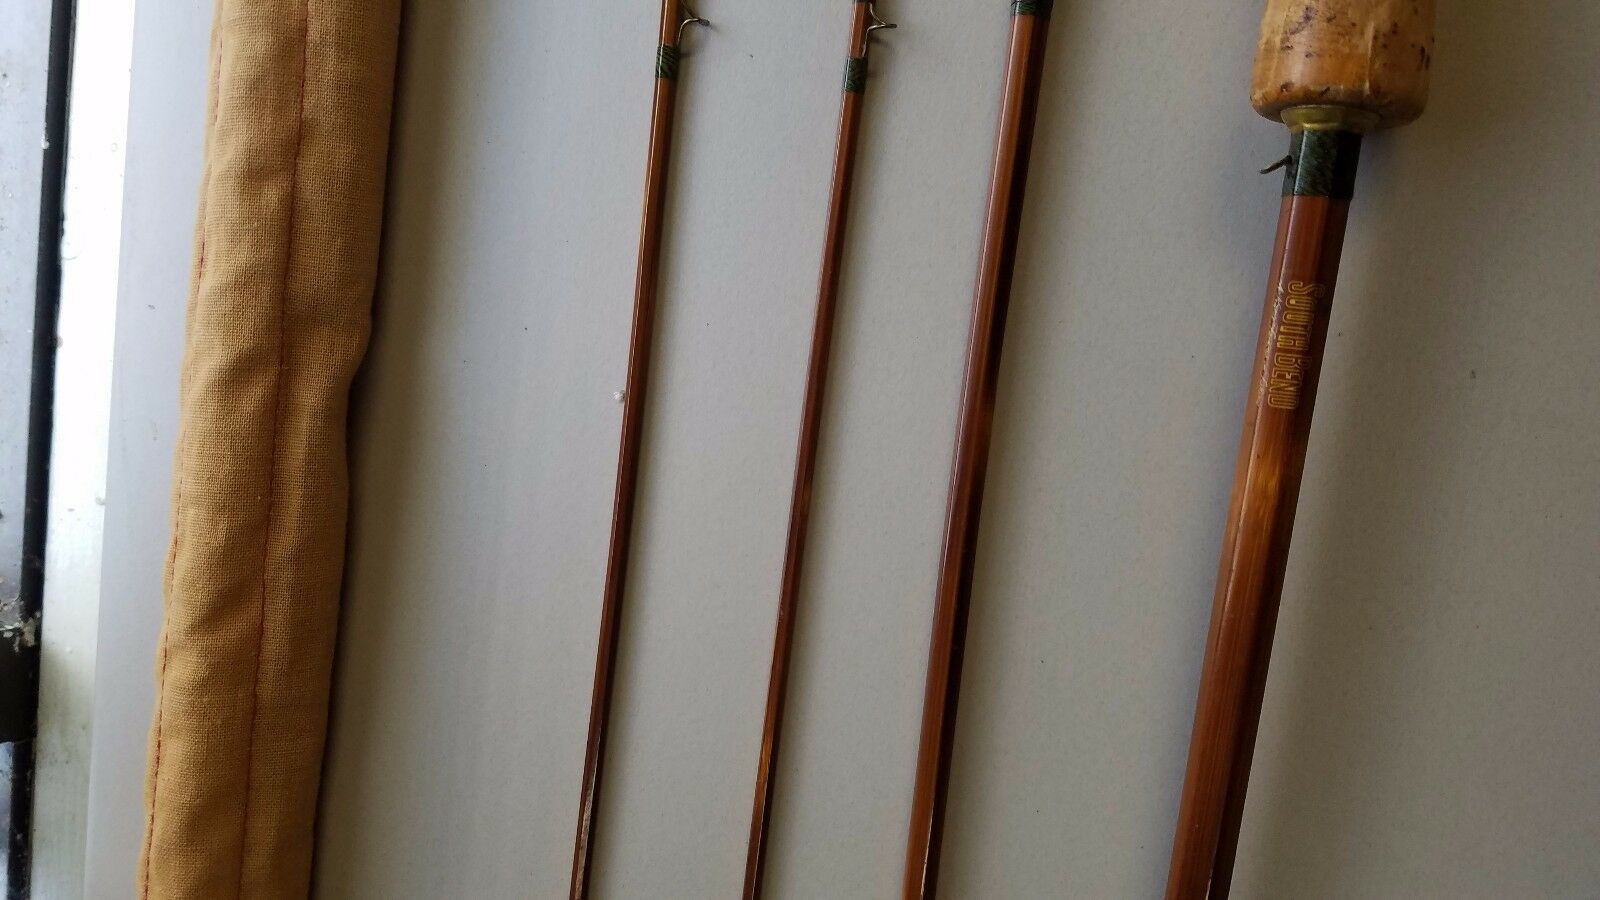 Vintage Fishing Pole SouthBend 359 4 piece 9' South Bend with case